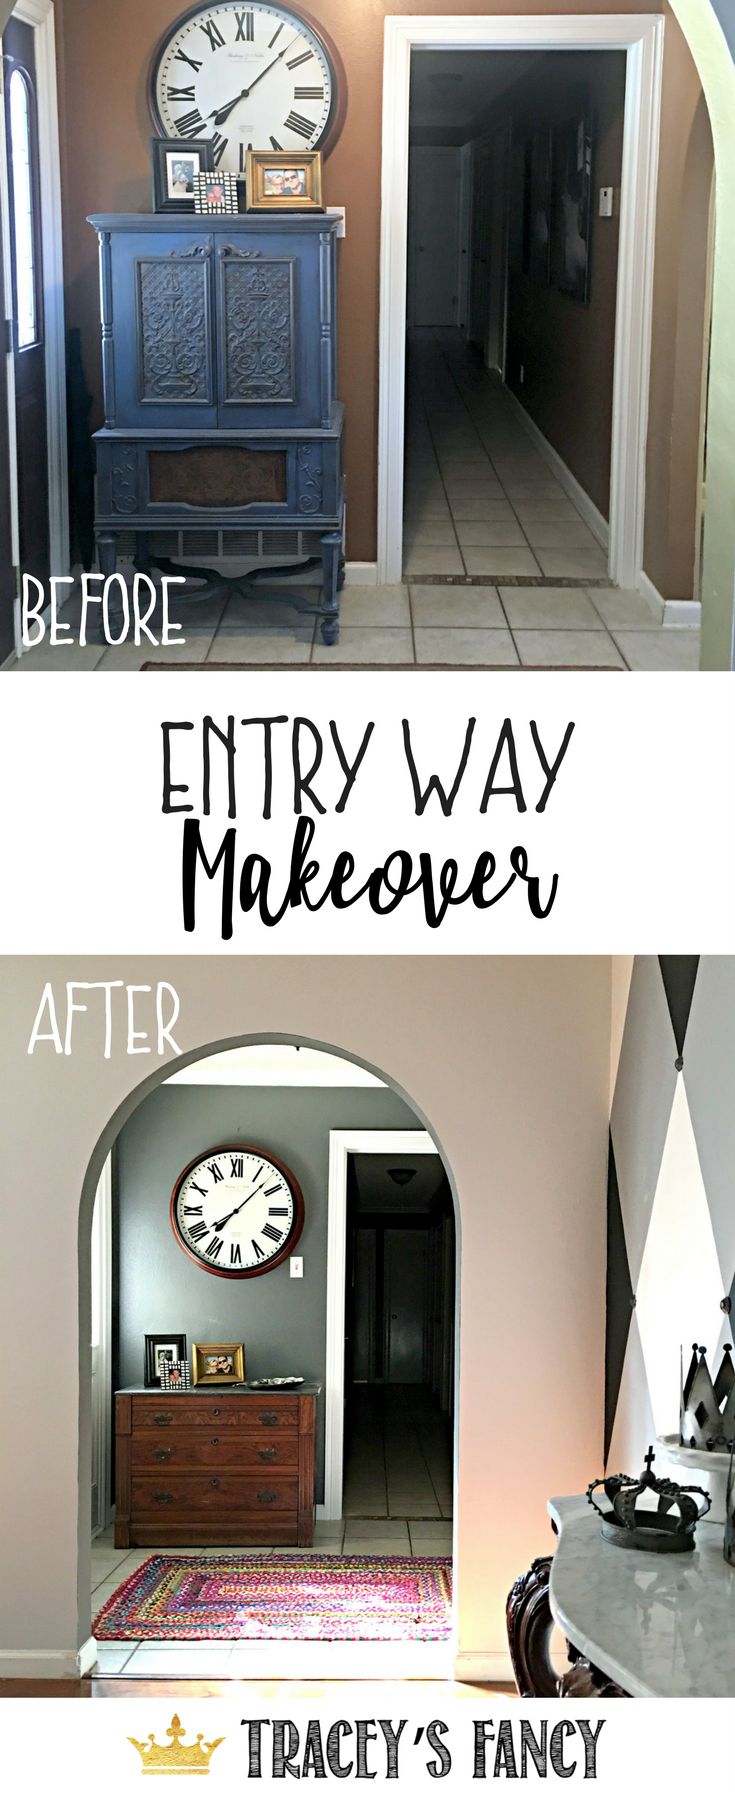 Entry Way Makeover by Traceyu0027s Fancy - Painting the inside of the Front Door - Foyer & Entry Way Makeover by Traceyu0027s Fancy - Painting the inside of the ...